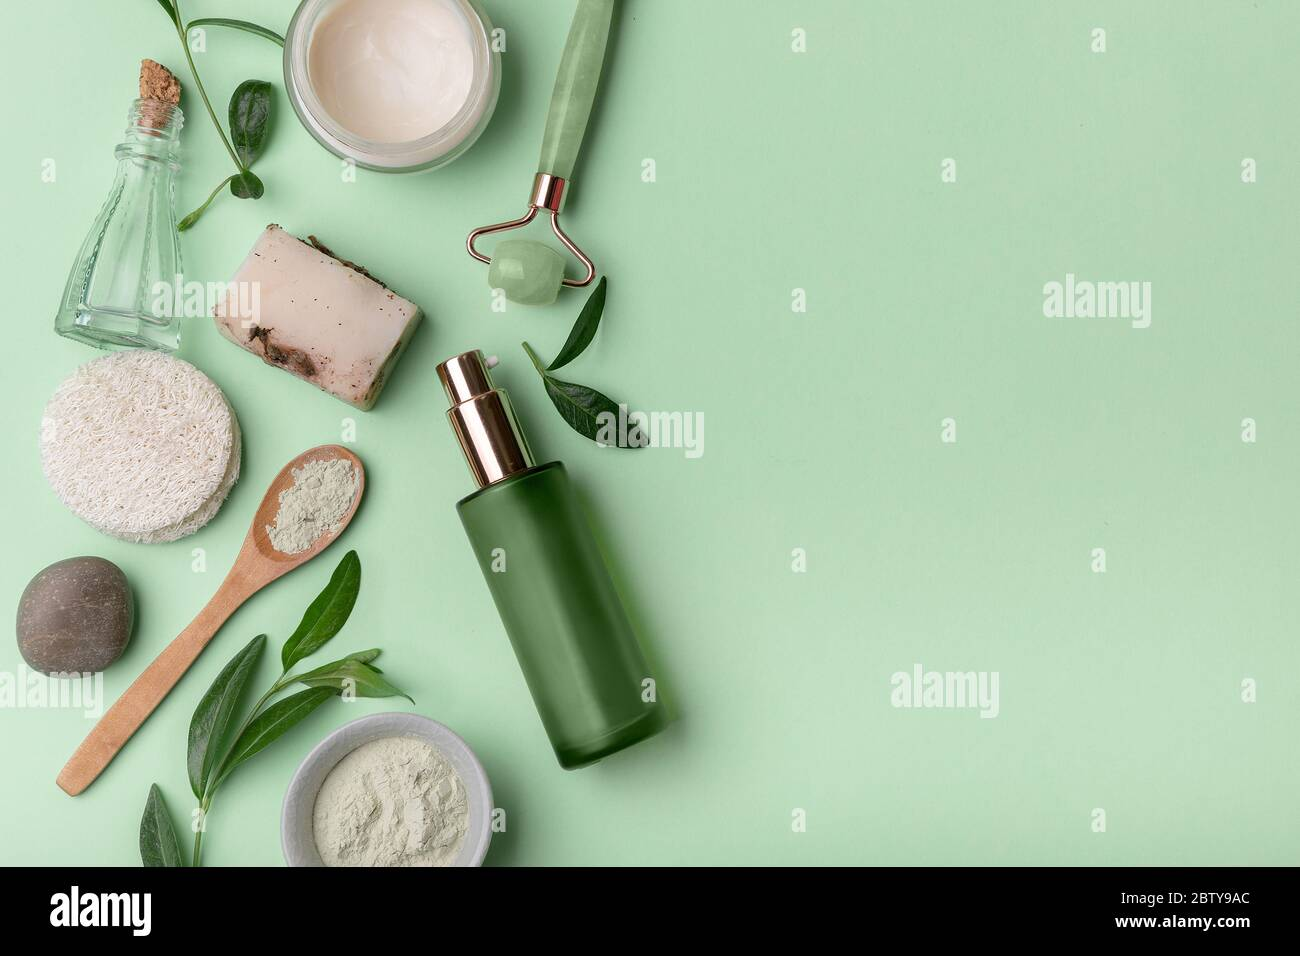 Beauty Background With Facial Cosmetic Products Eco Friendly Cosmetic And Skin Care Products Massager Facial Oil Handmade Soap Face Cream Mask Bo Stock Photo Alamy